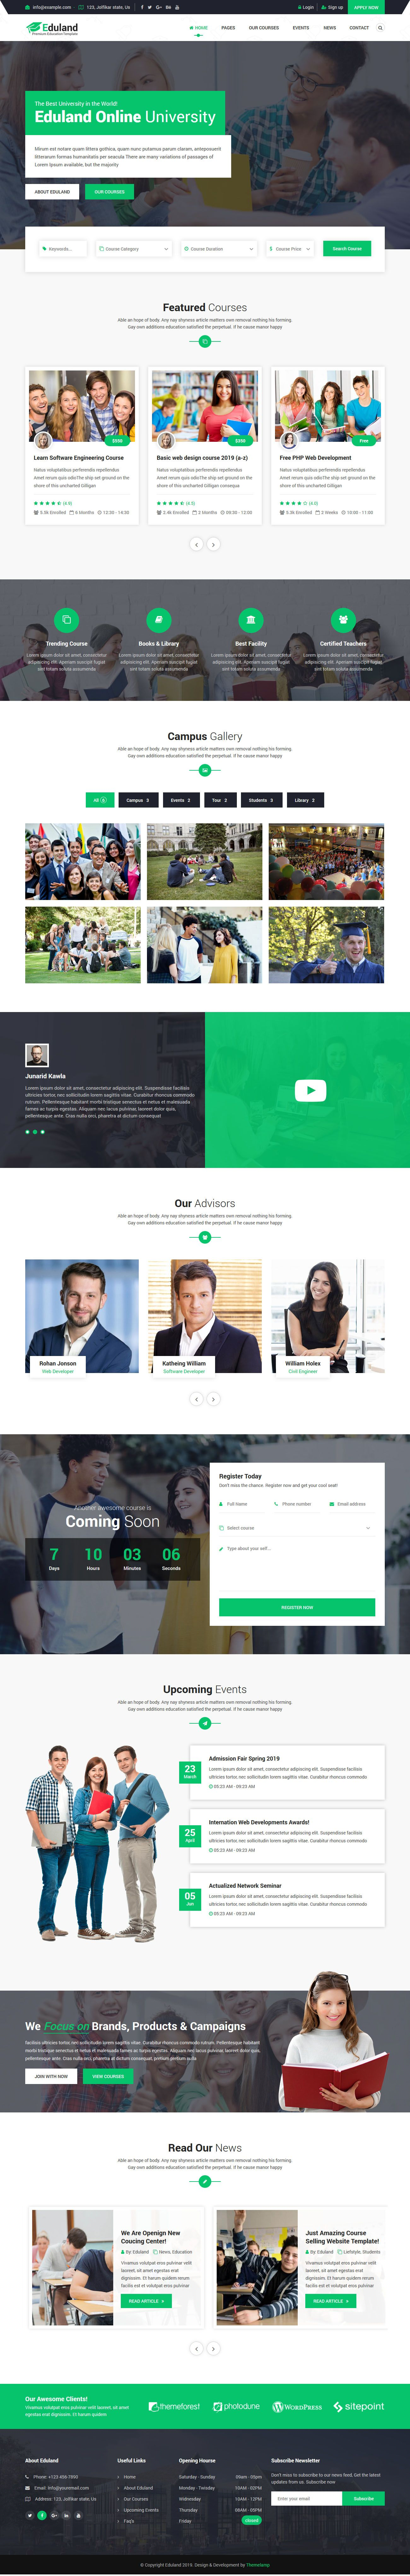 Eduland - Education And Courses HTML5 Template Screenshot 1